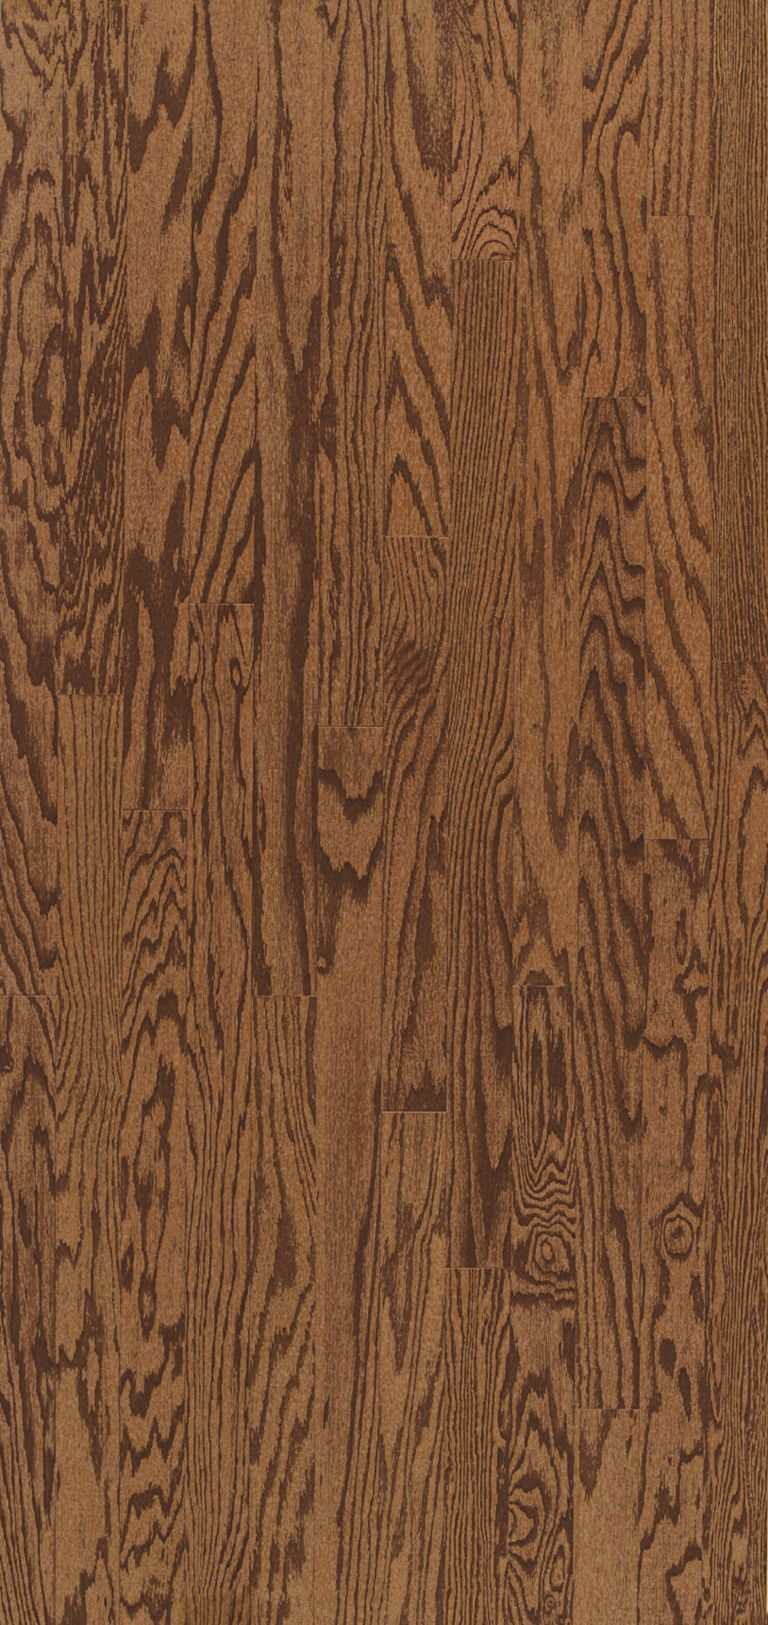 Oak - Woodstock Hardwood E537